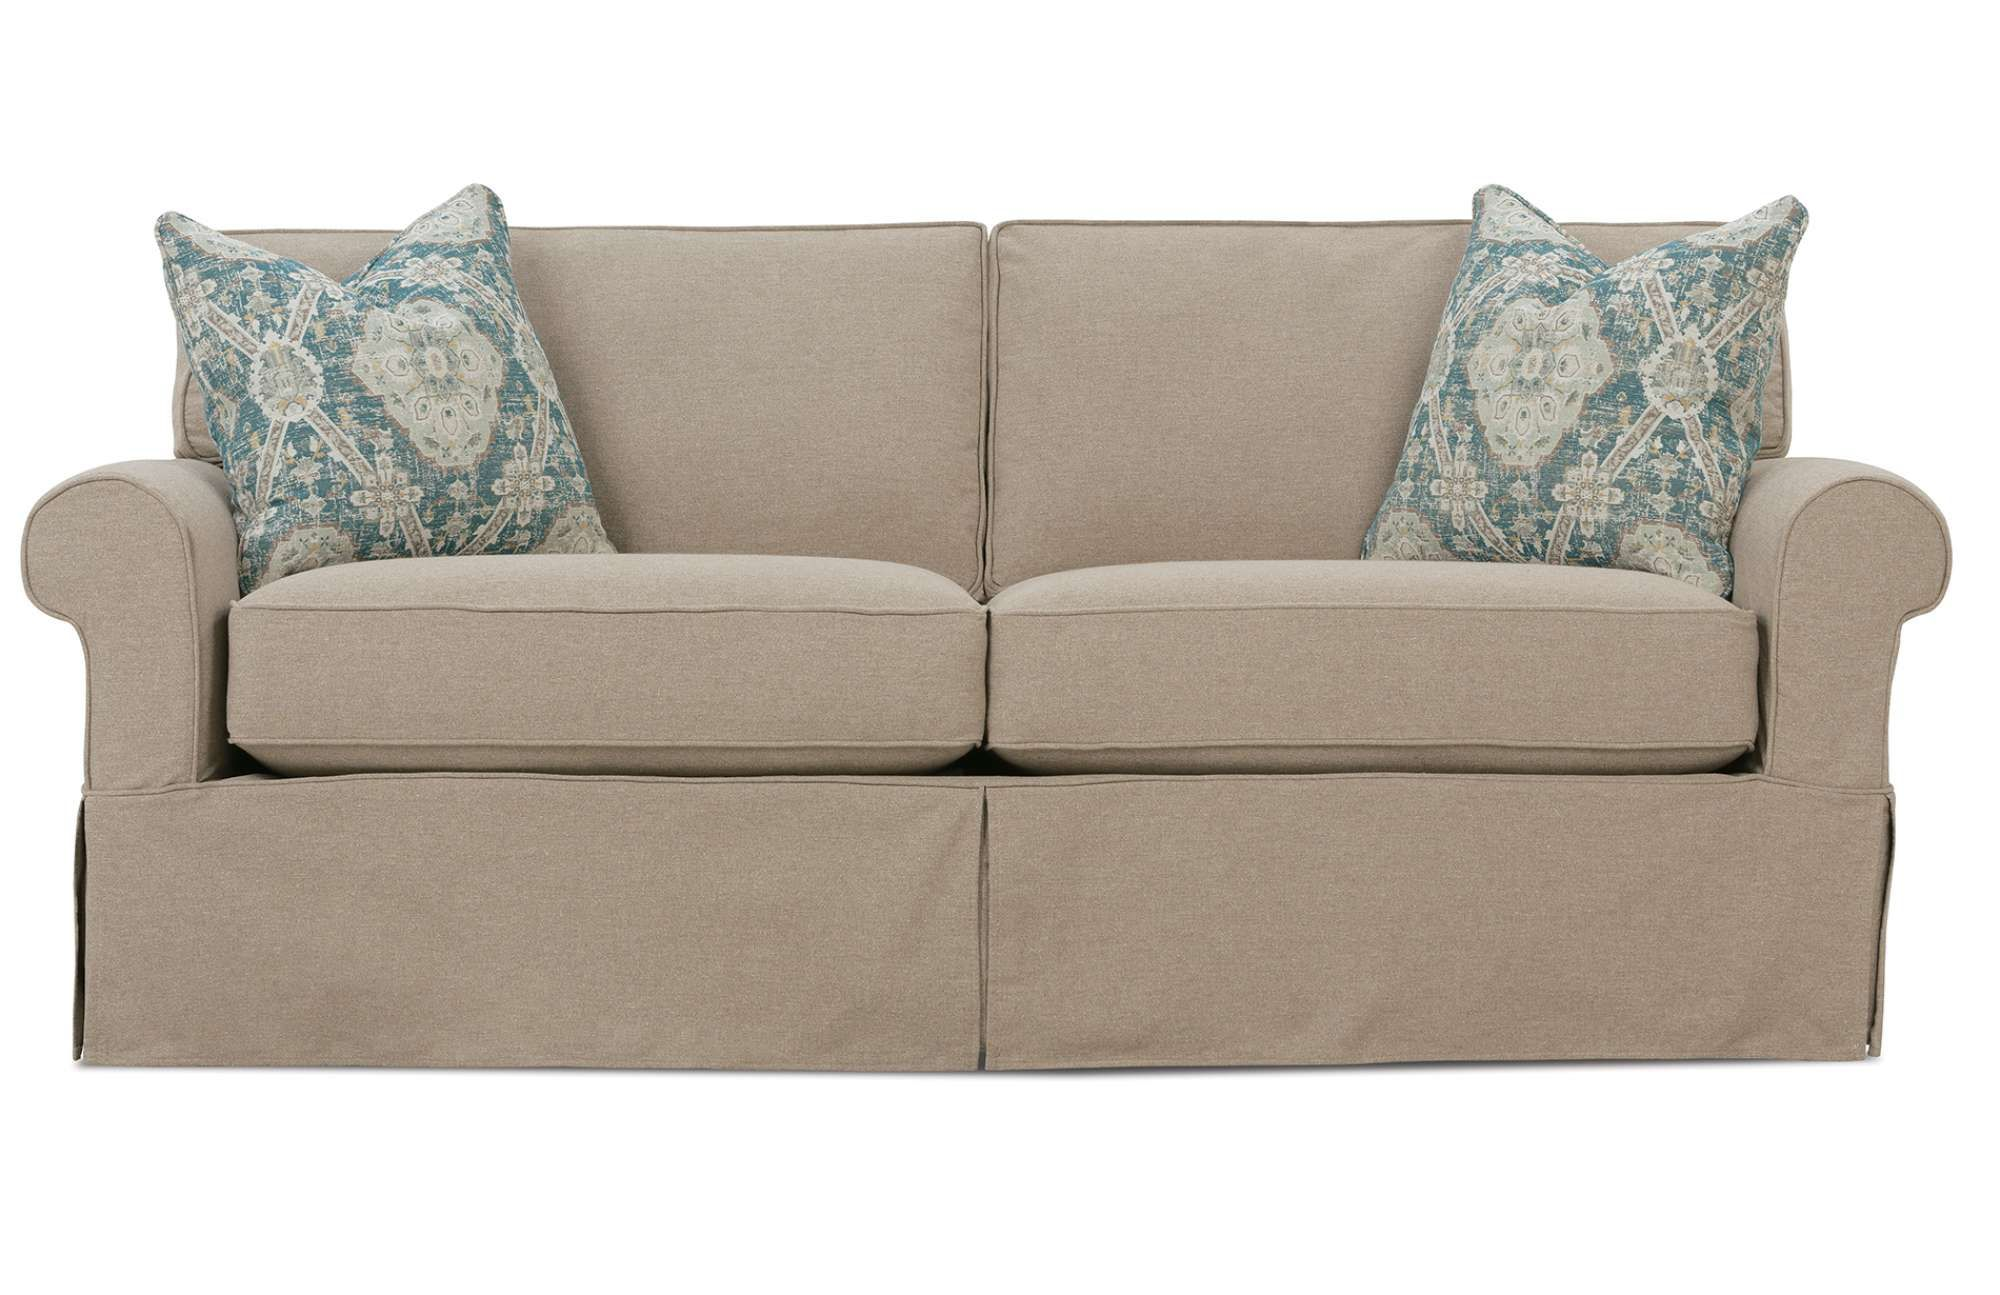 Nantucket 2 seat slipcover queen sleeper sofa rowe furniture rowe - The Nantucket Two Cushion Is A Modern Rowe Furniture Design That Features An Upholstered Slipcover Customize The Fabric And Finishes Here